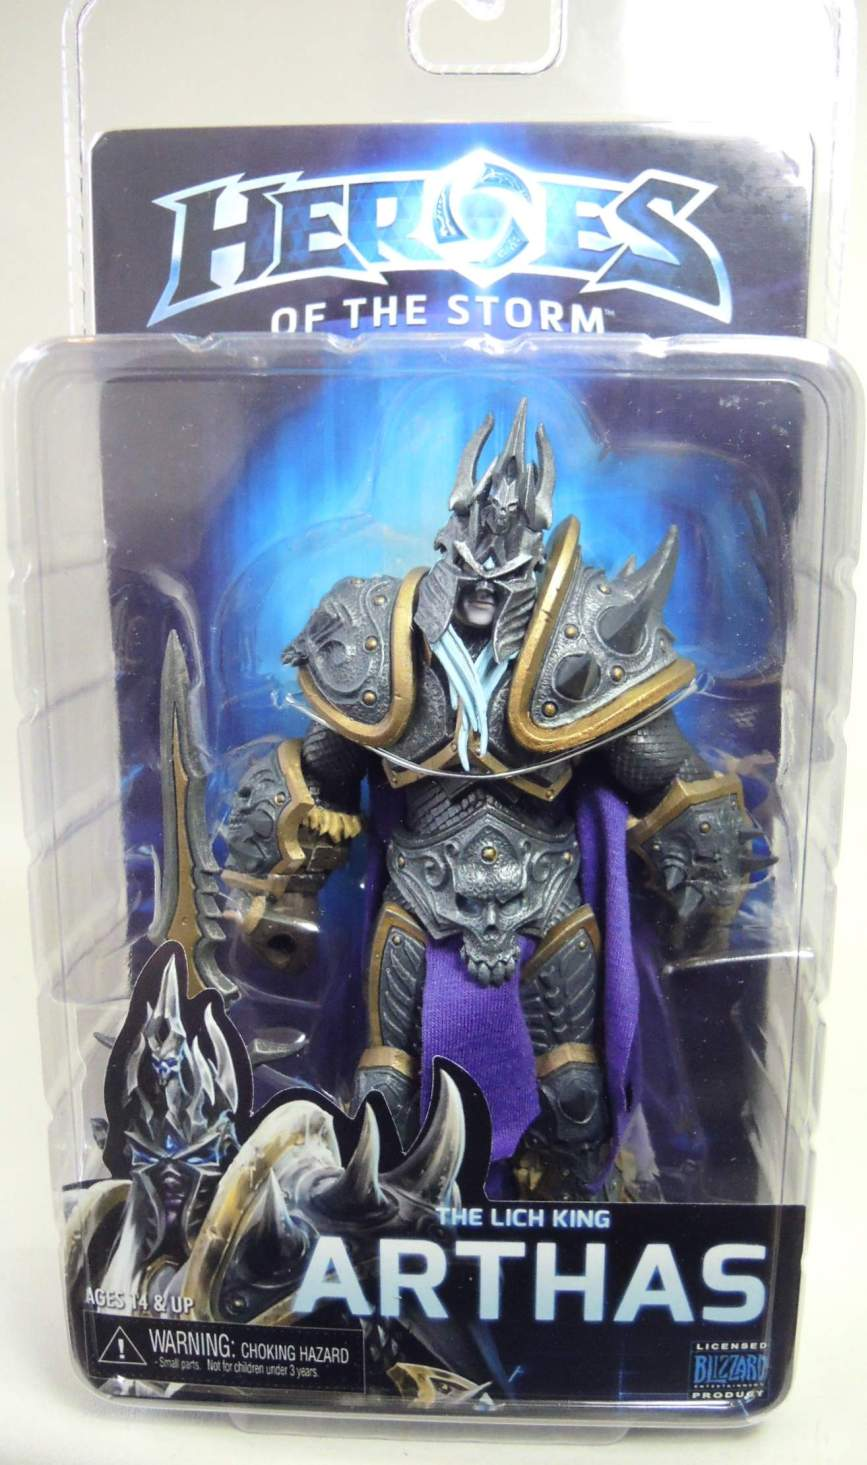 NECA Heroes of the Storm Figure - Arthas The Lich King